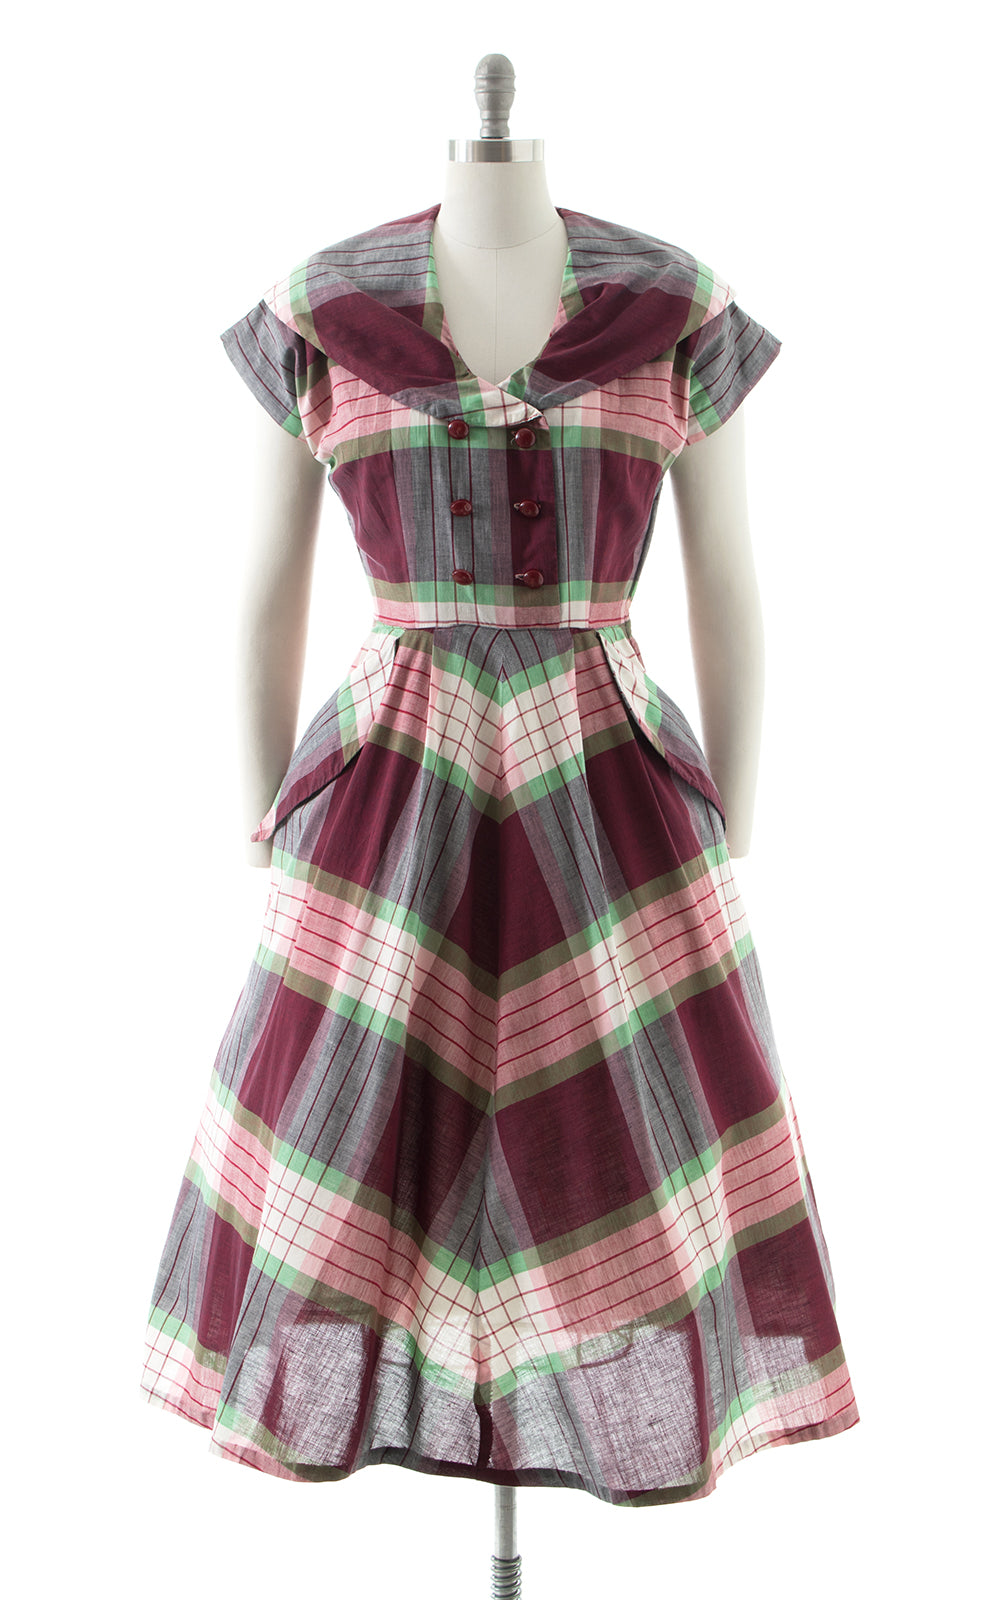 1950s Plaid Cotton Shirtwaist Dress BirthdayLifeVintage